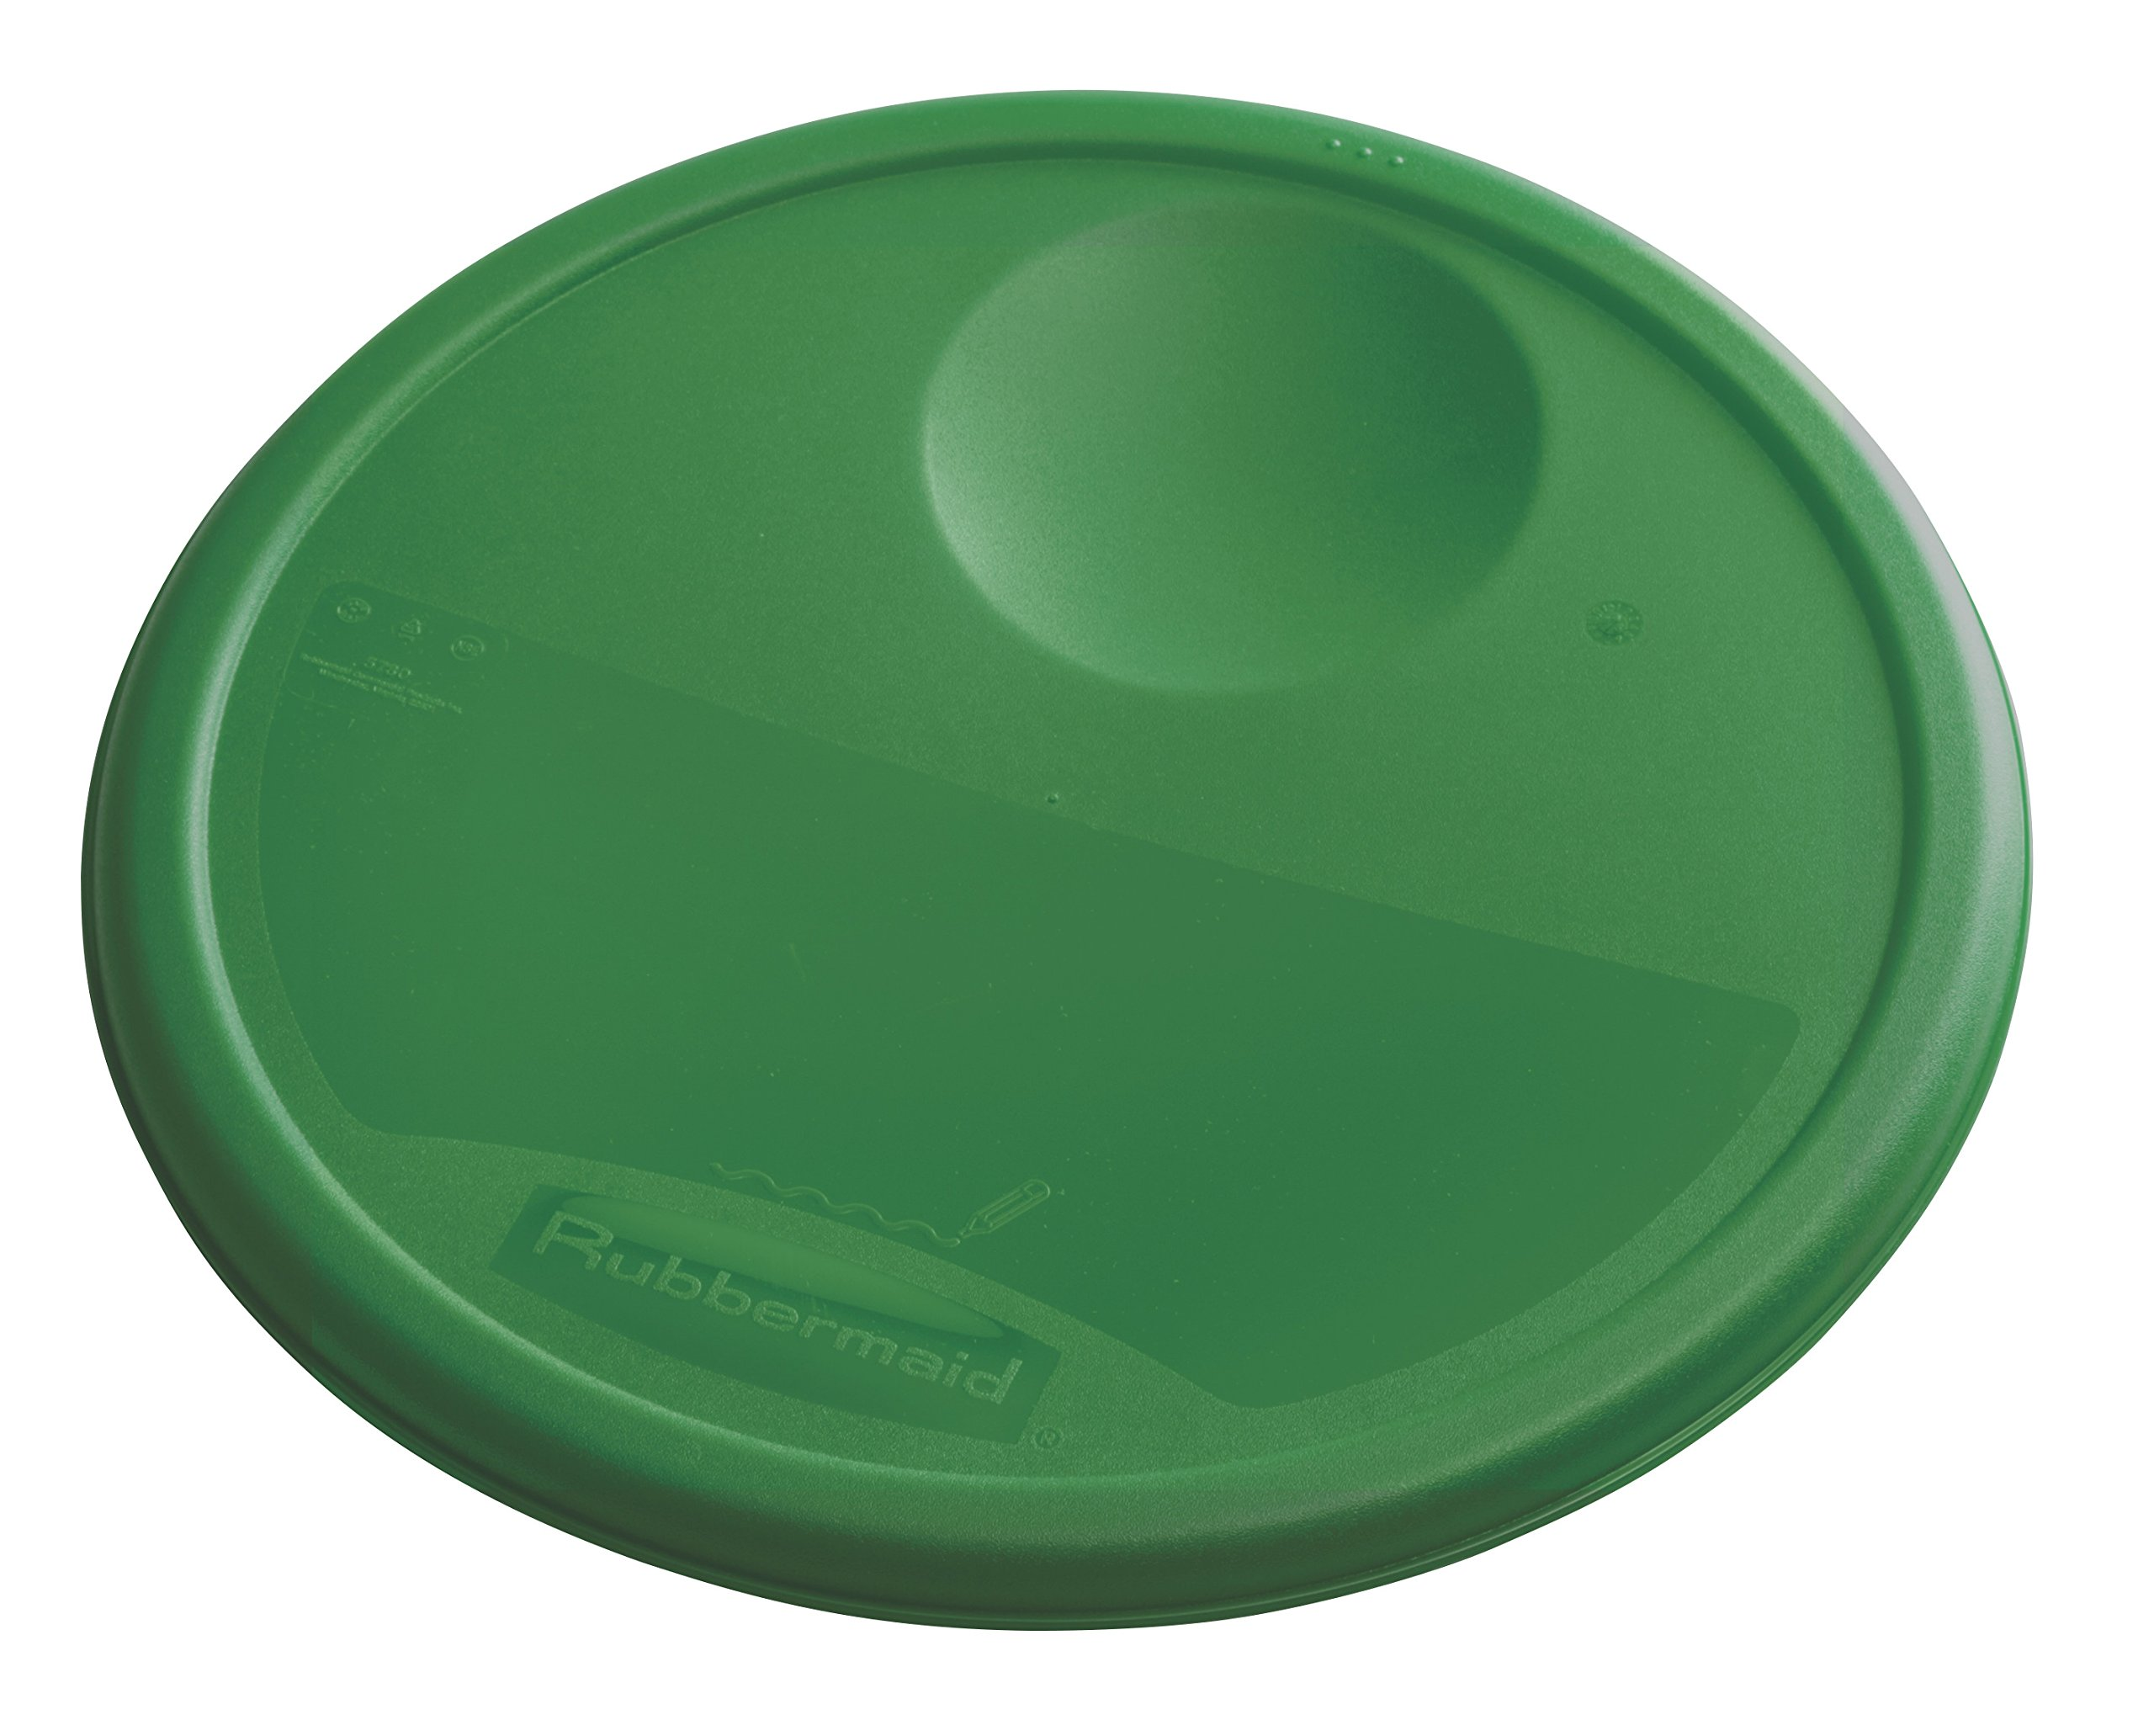 Rubbermaid Commercial Products 1980388 Rubbermaid Commercial Plastic Food Storage Container Lid, Round, Green, 12 quart